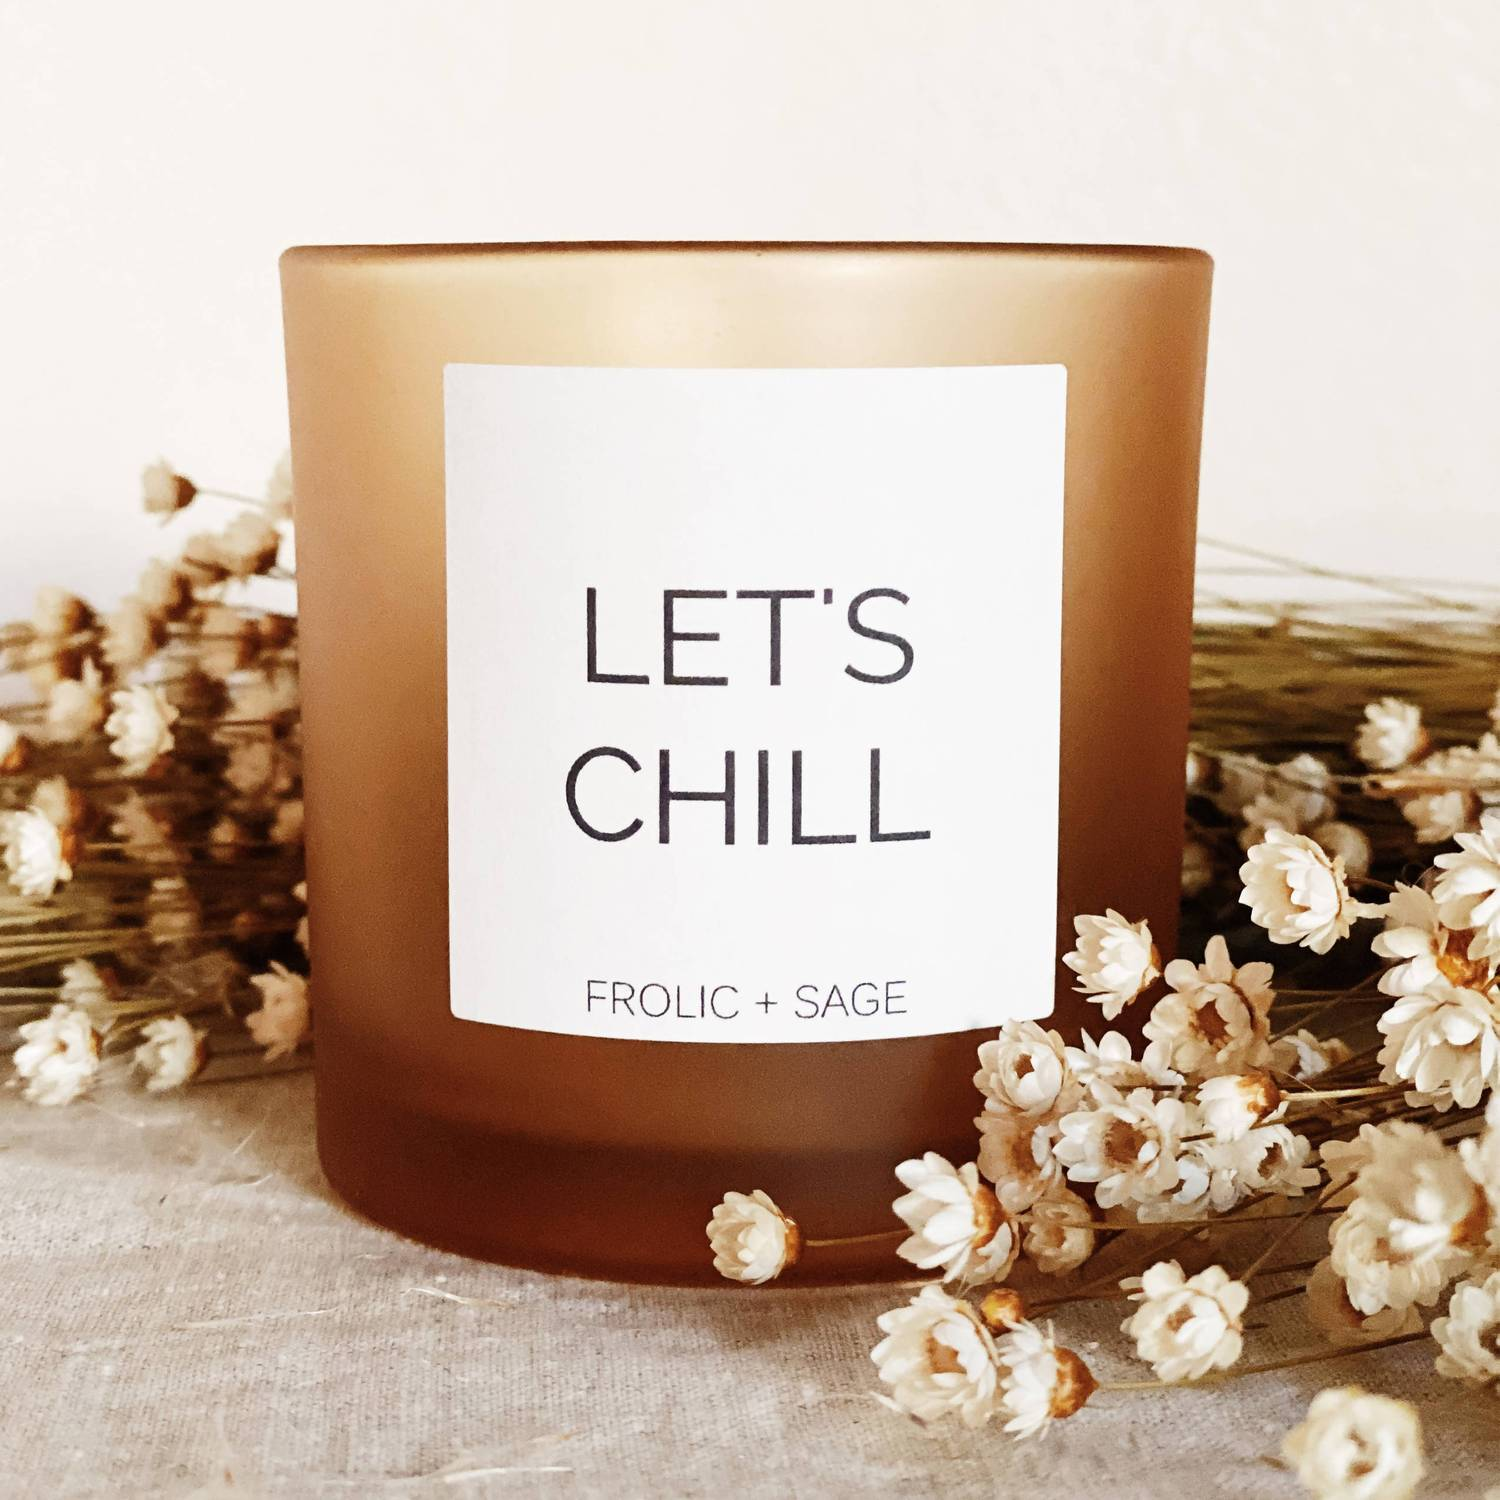 Black-Owned Brands and small shops Frolic + Sage Let's Chill Candle